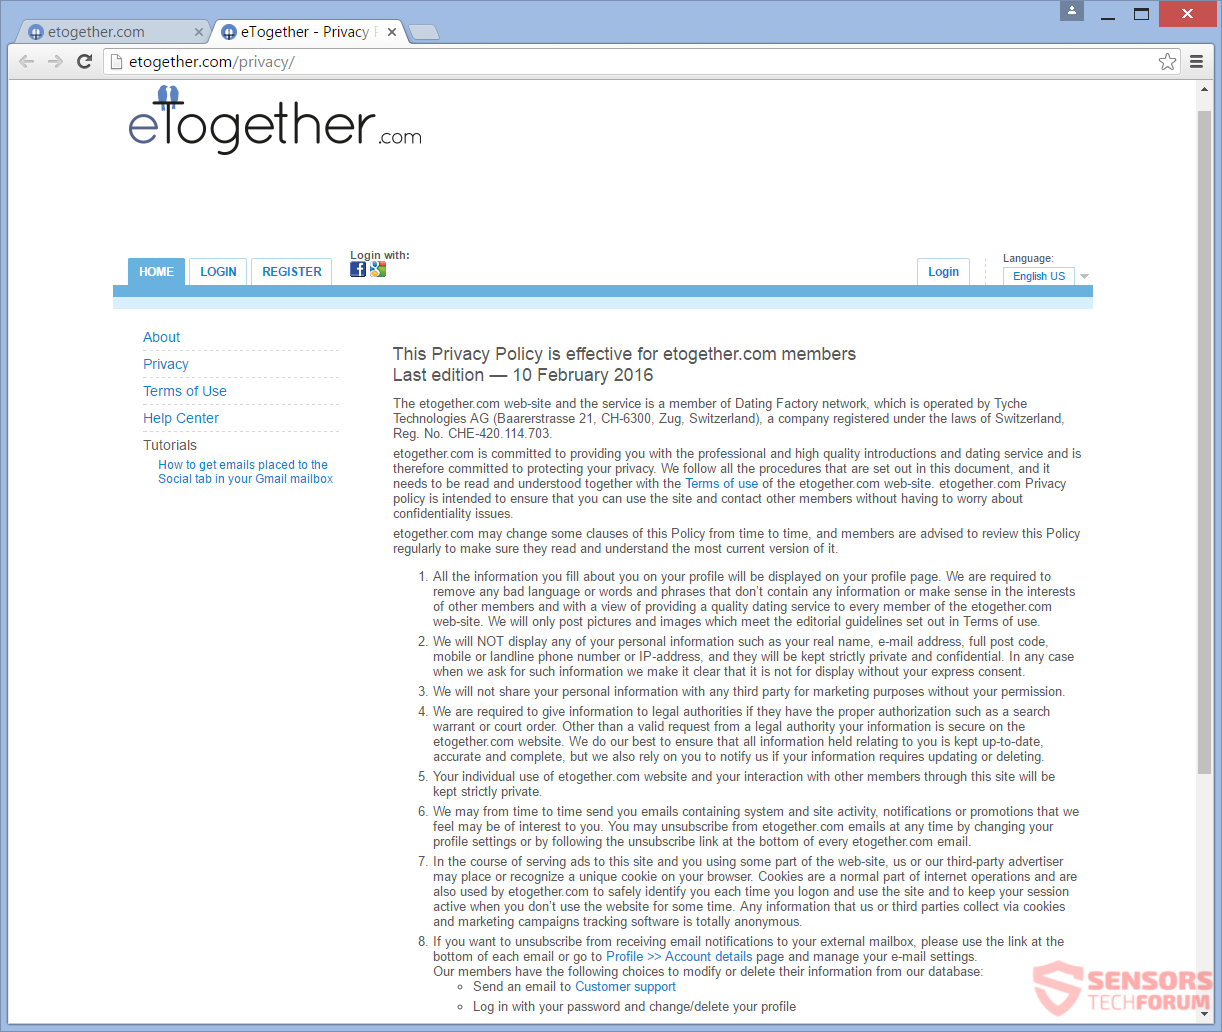 STF-etogether-com-e-together-adware-dating-online-platform-privacy-policy